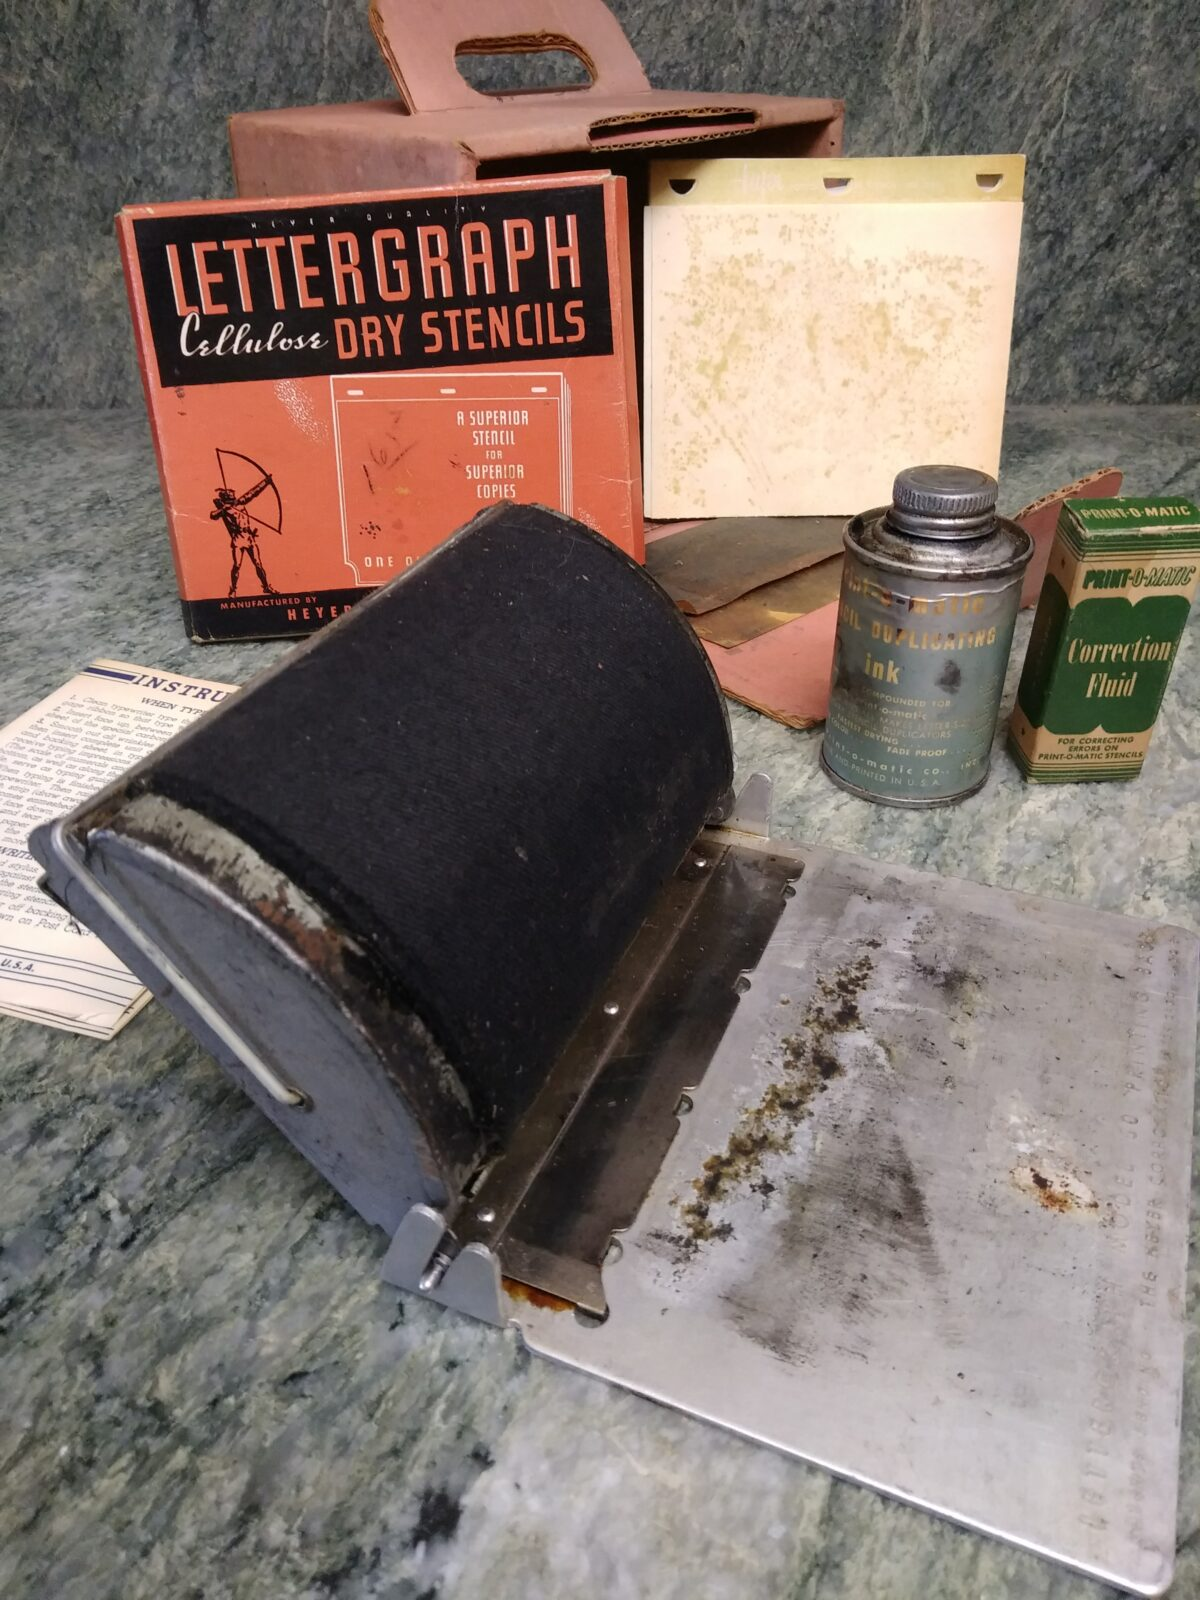 Heyer Lettergraph Model 60 and accompanying materials